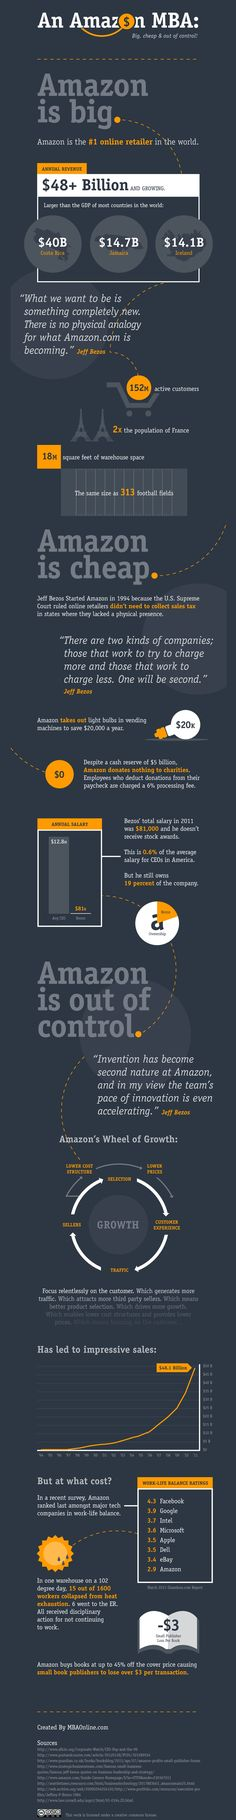 How Amazon Saves a Ton of Money